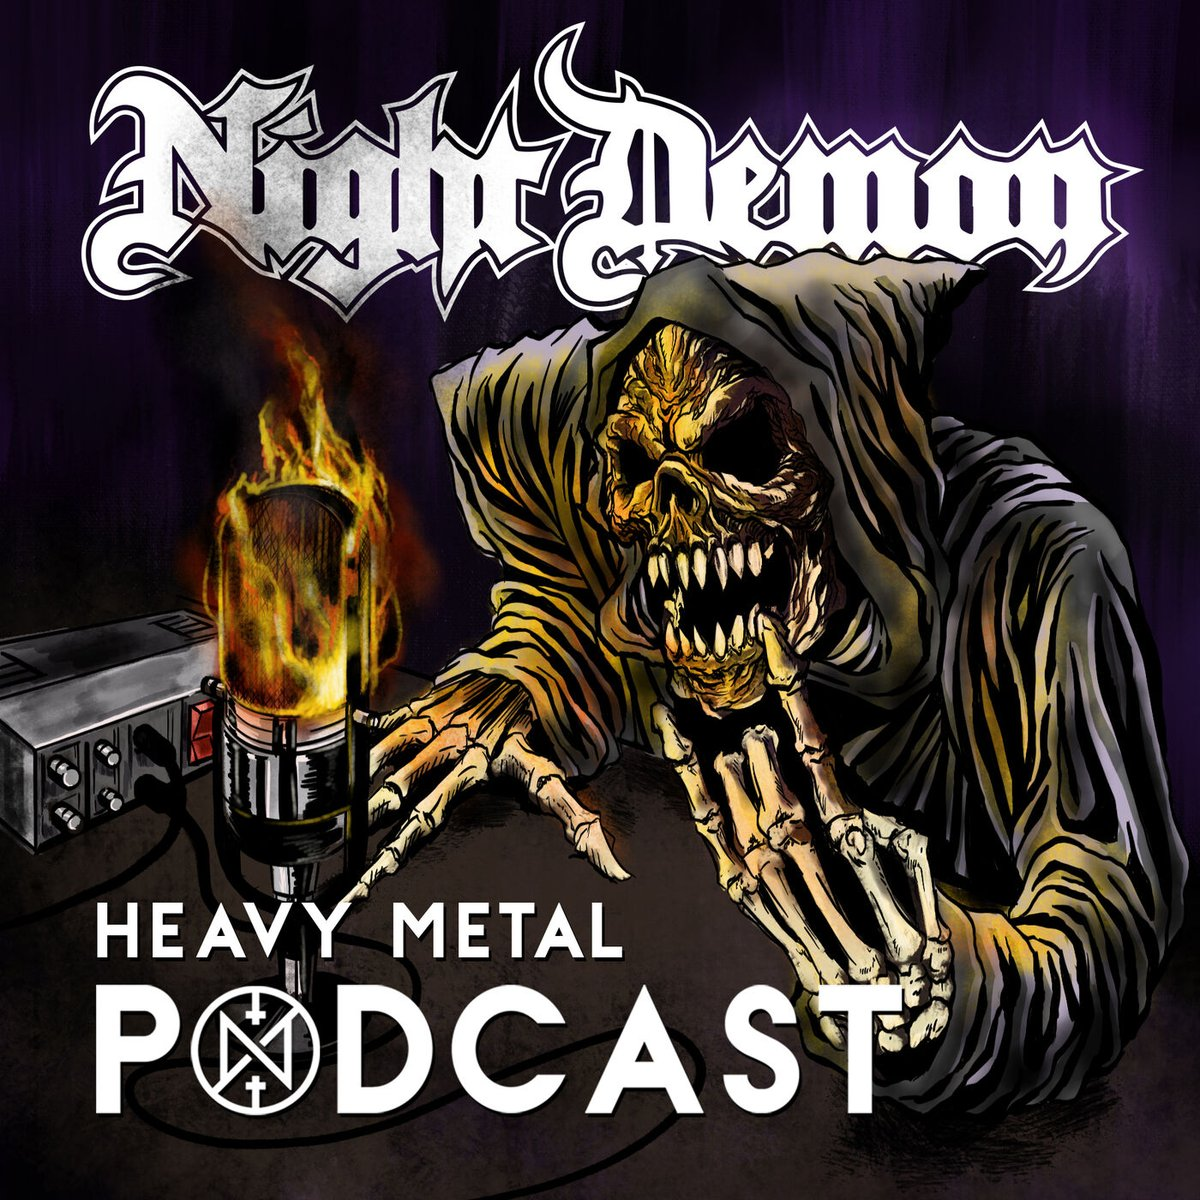 The #NightDemon #Podcast is here!  You think you know Night Demon? Then the Night Demon #HEAVYMETAL Metal podcast is for you. Step into the darkness as the band peels back the curtain to give you an unprecedented all-access look into the mind of the band!